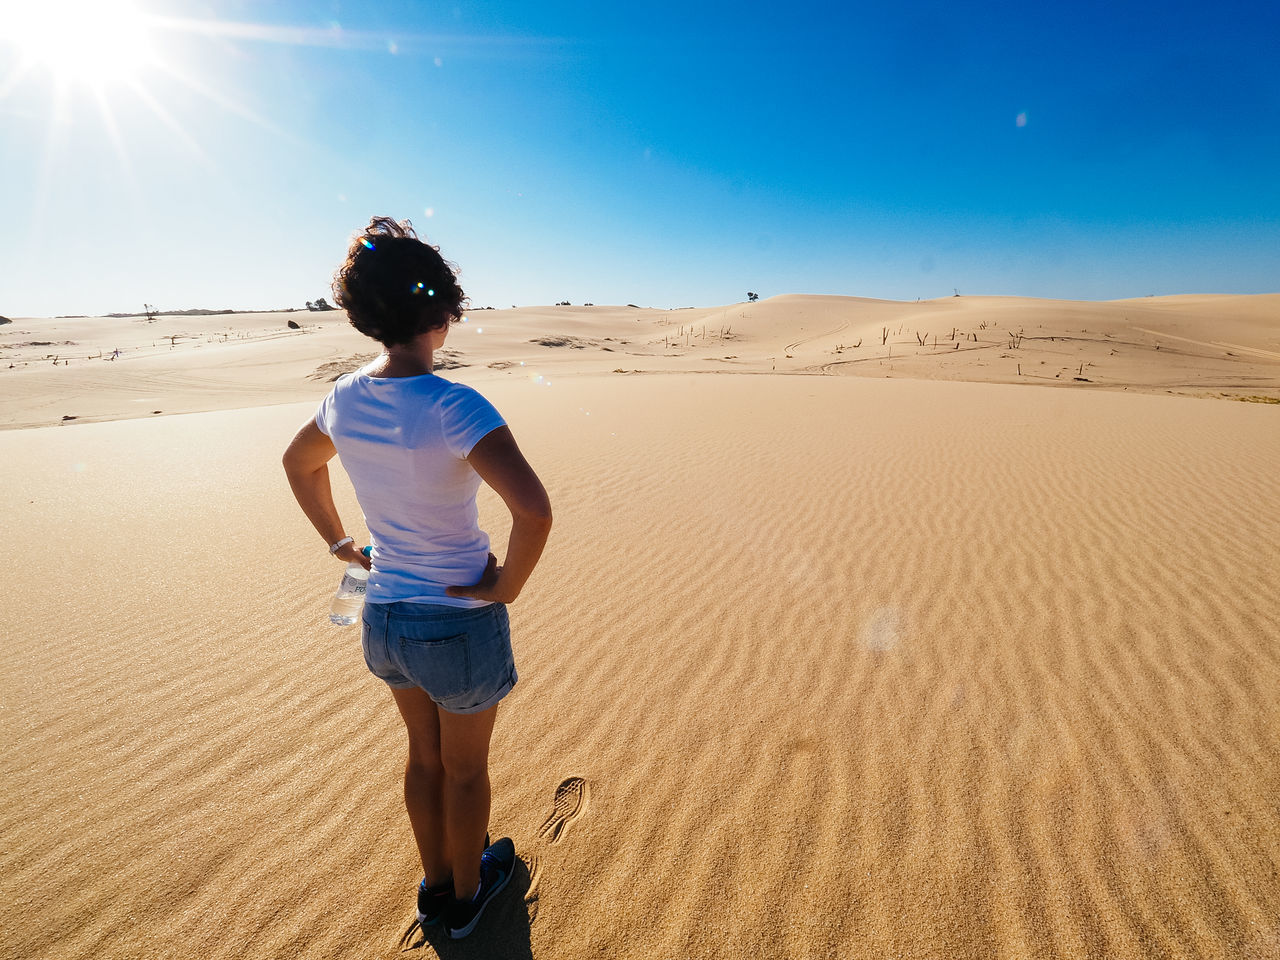 Arid Climate Beach Beauty In Nature Childhood Clear Sky Day Desert Epic Isolated Lonely Nature One Person Outdoors People Real People Rear View Sand Sand Dune Scenics Sky Sun Sunlight Vast